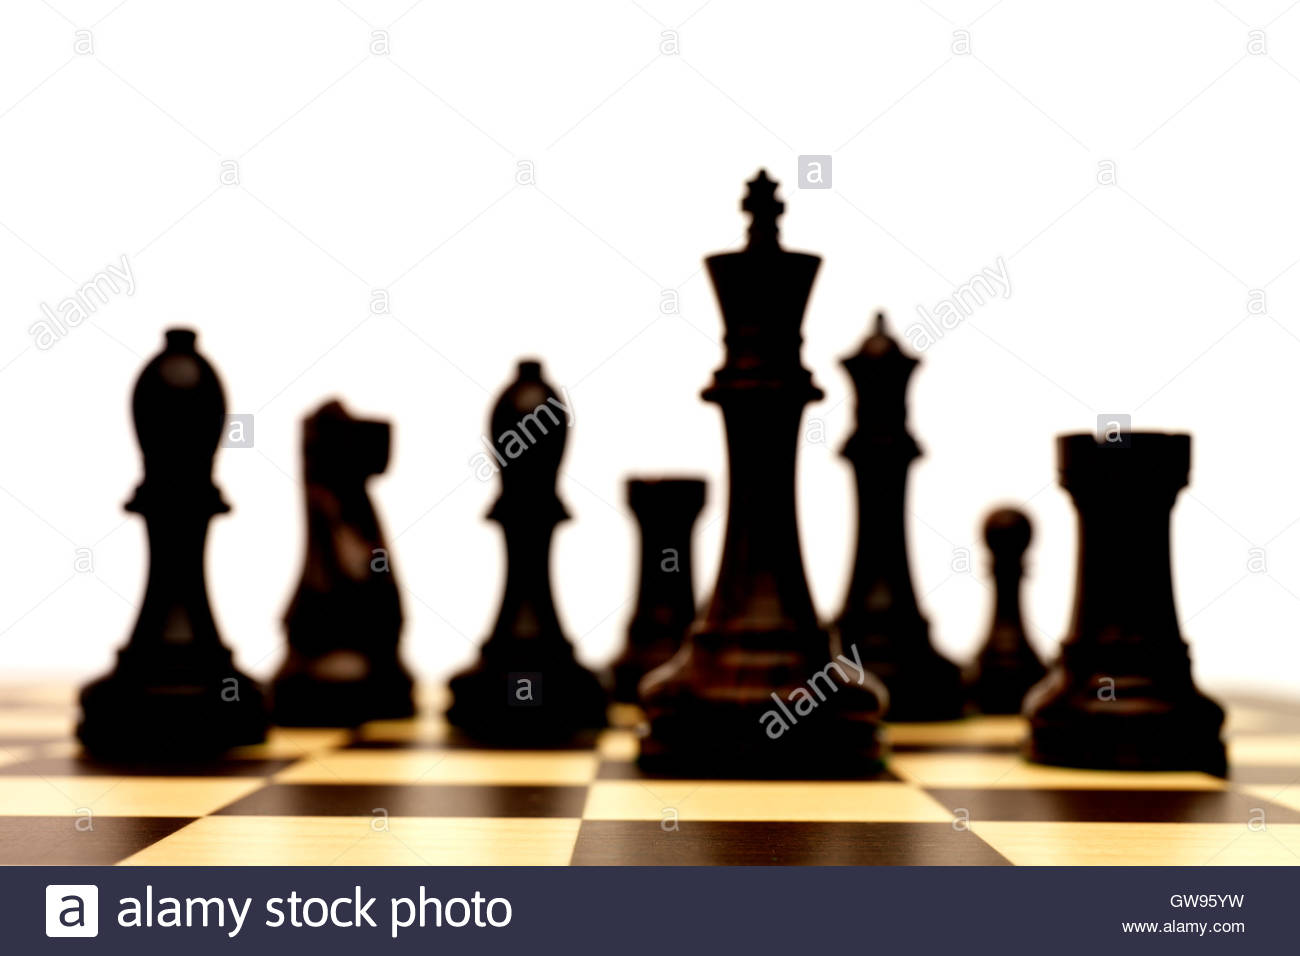 1300x956 Silhouette King Queen Chess Pieces Stock Photos Amp Silhouette King